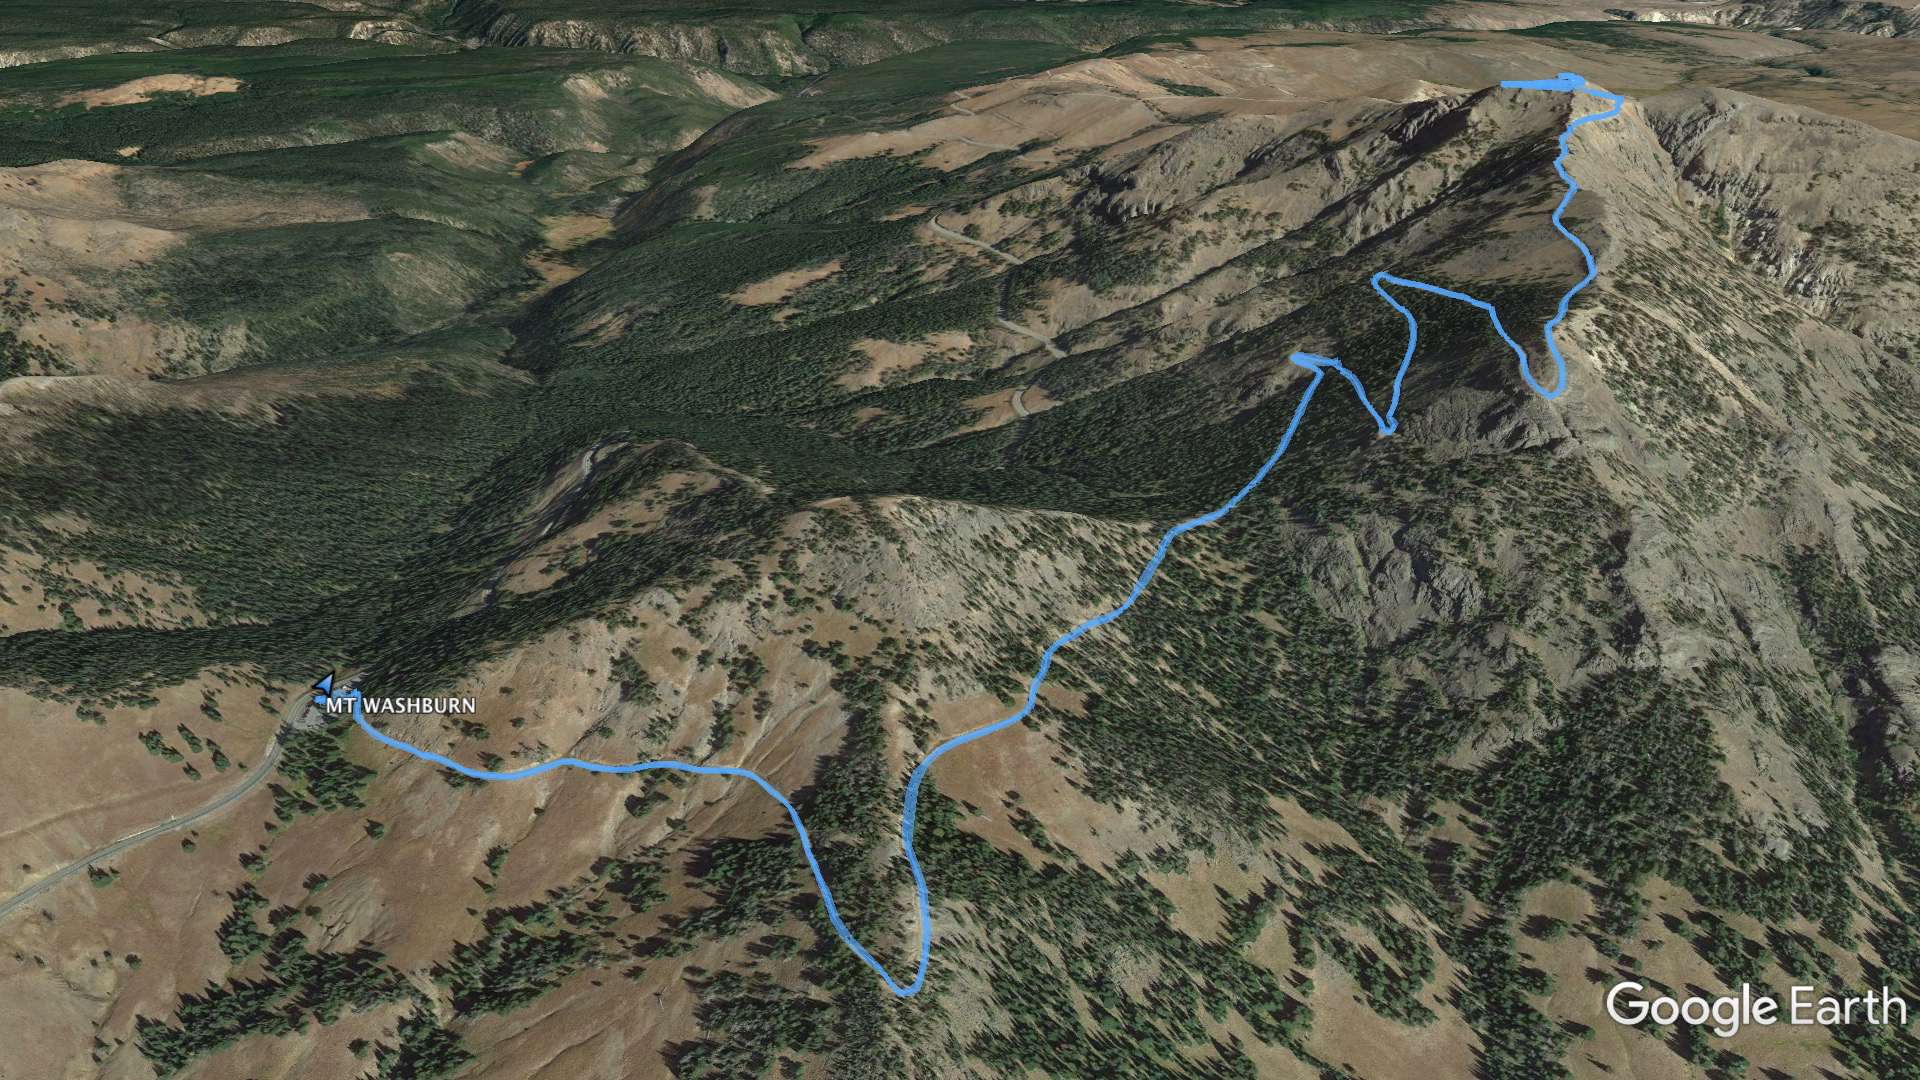 Aerial view of the summit path for Mt. Washburn in Yellowstone.